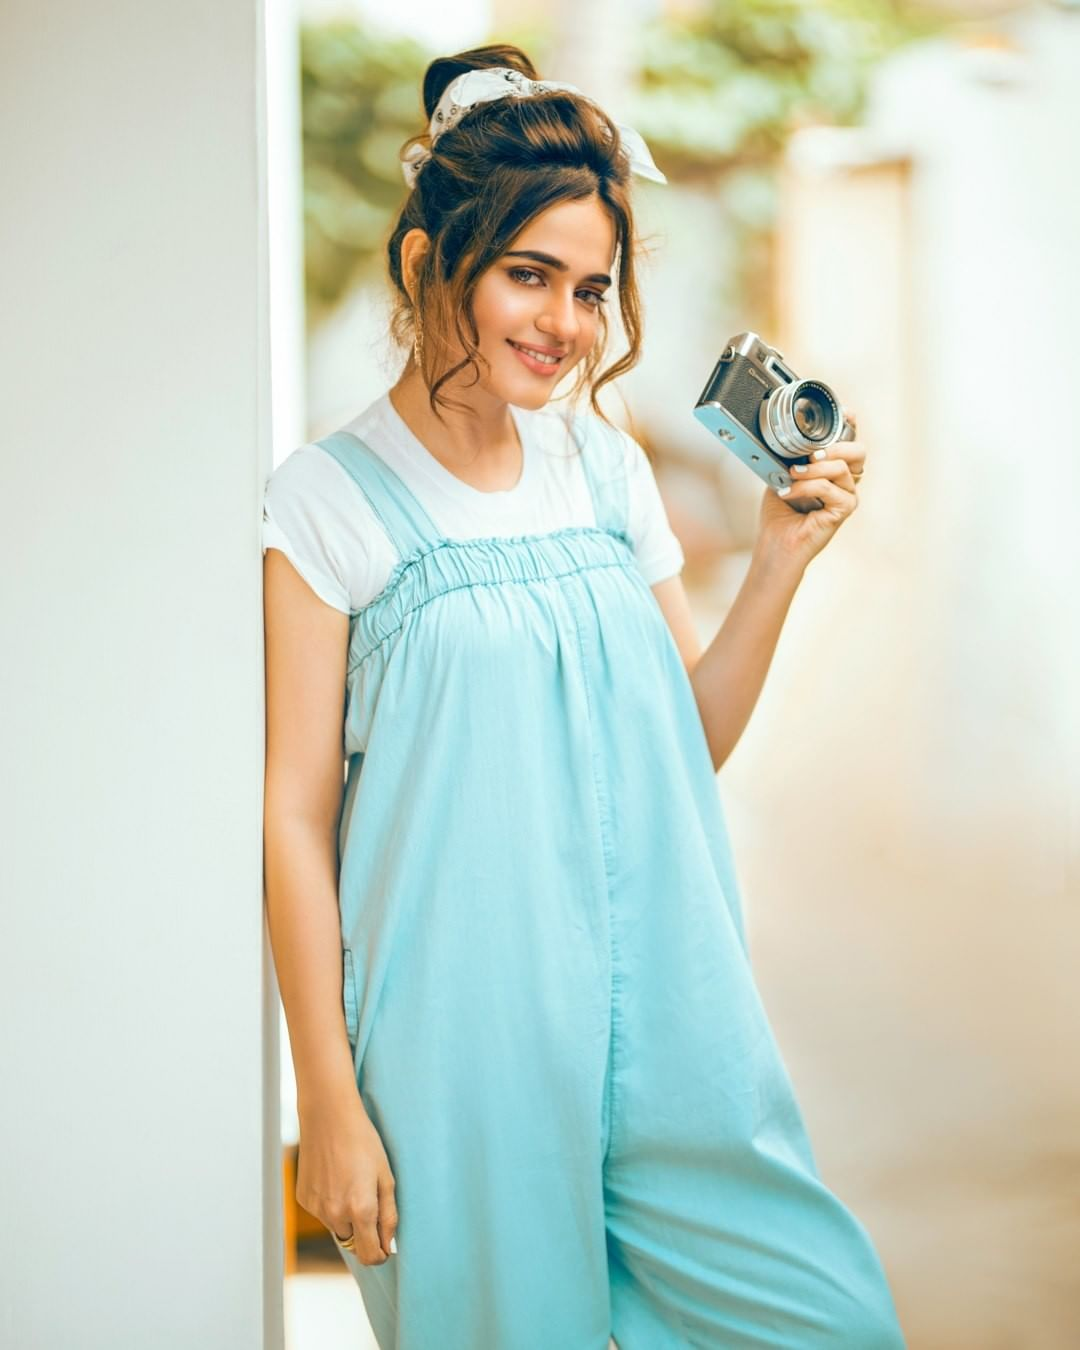 Actress Sumbul Iqbal trendy looks for Latest Photoshoot (12)